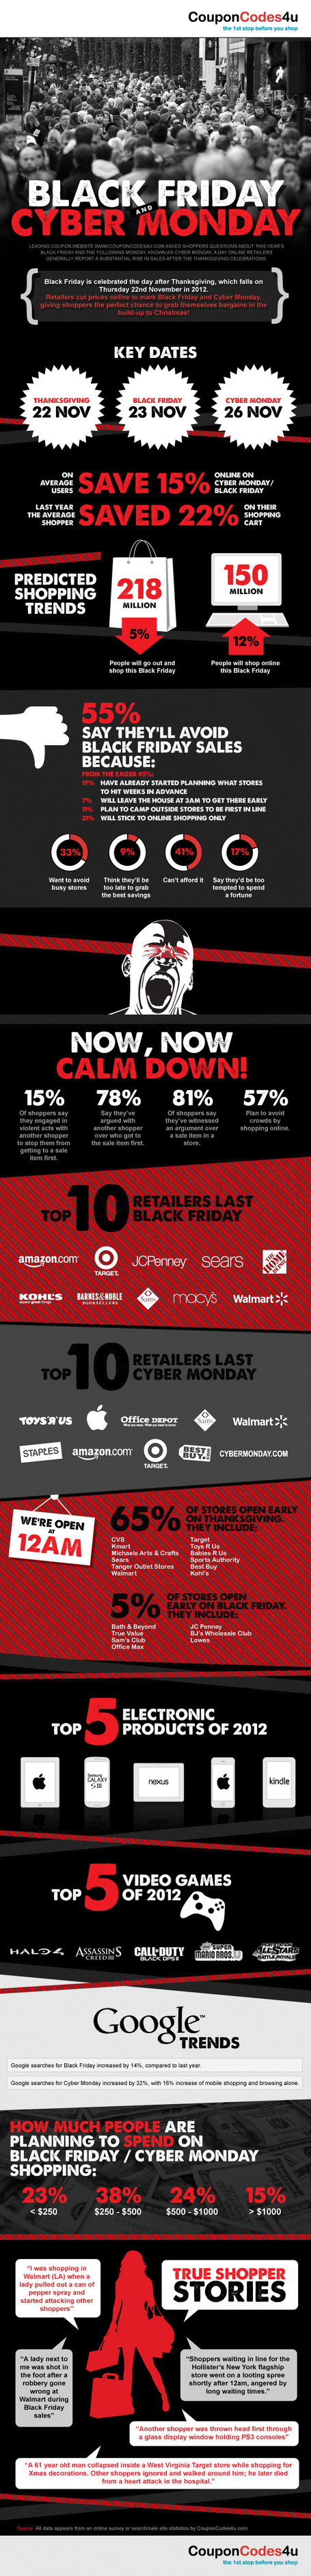 Cyber Monday and Black Friday | All Technology Buzz | Scoop.it